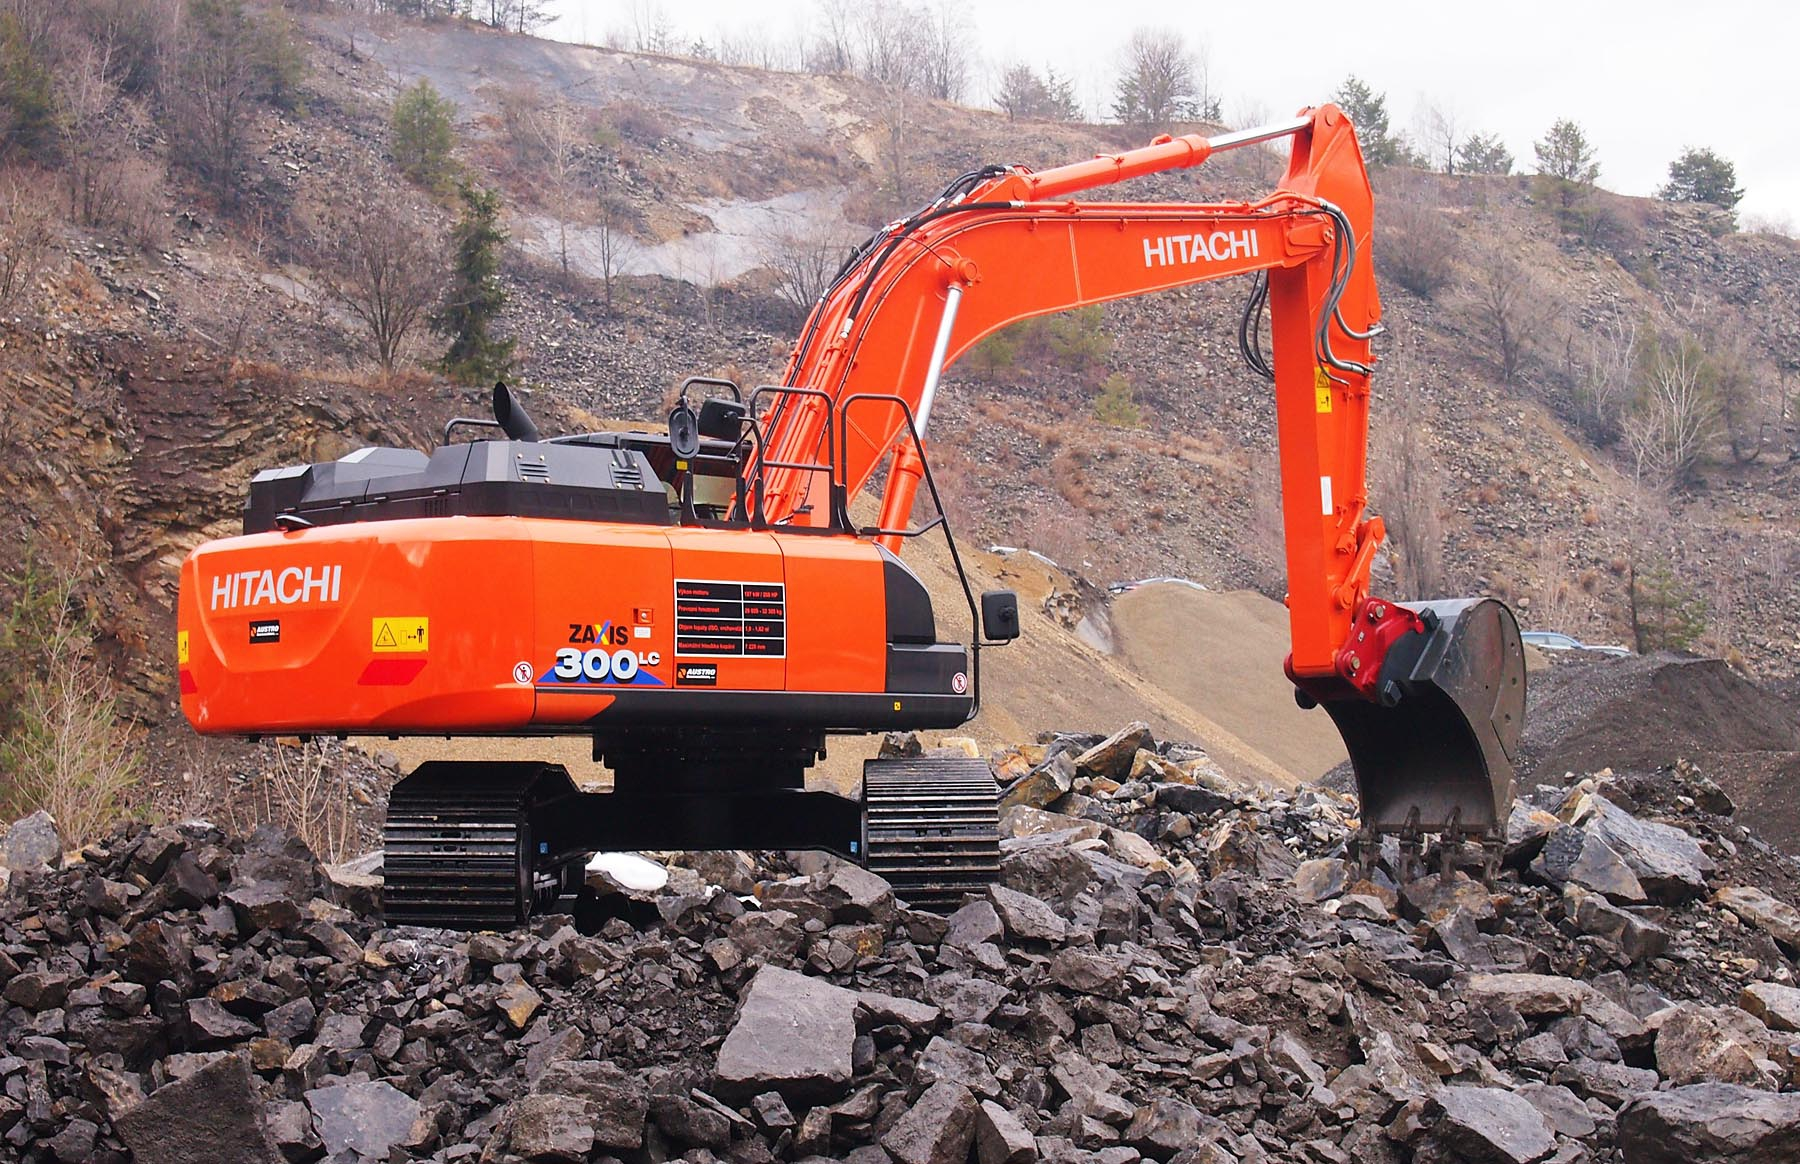 Hitachi ZX210LC-6 / ZX240N-6 / ZX250LC-6 / ZX300LC-6 / ZX350LC-6